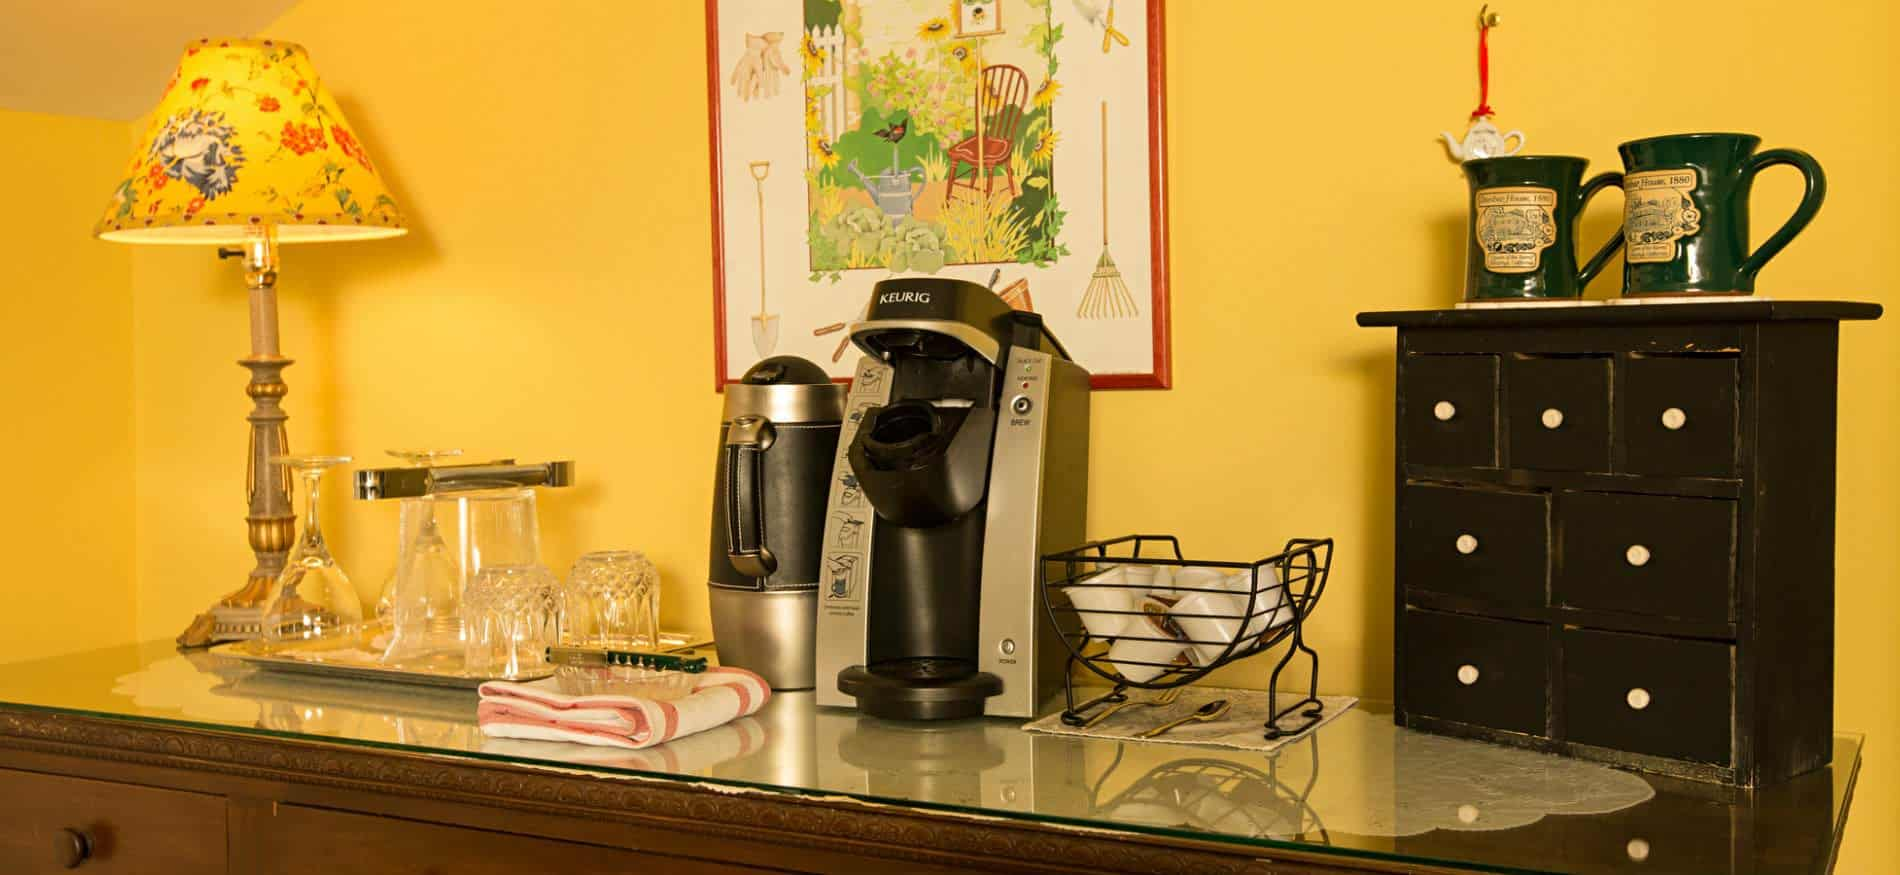 Close-up view of beverage station with floral lamp, Keurig, teapot, k-cups, coffee mugs, glasses and wine glasses